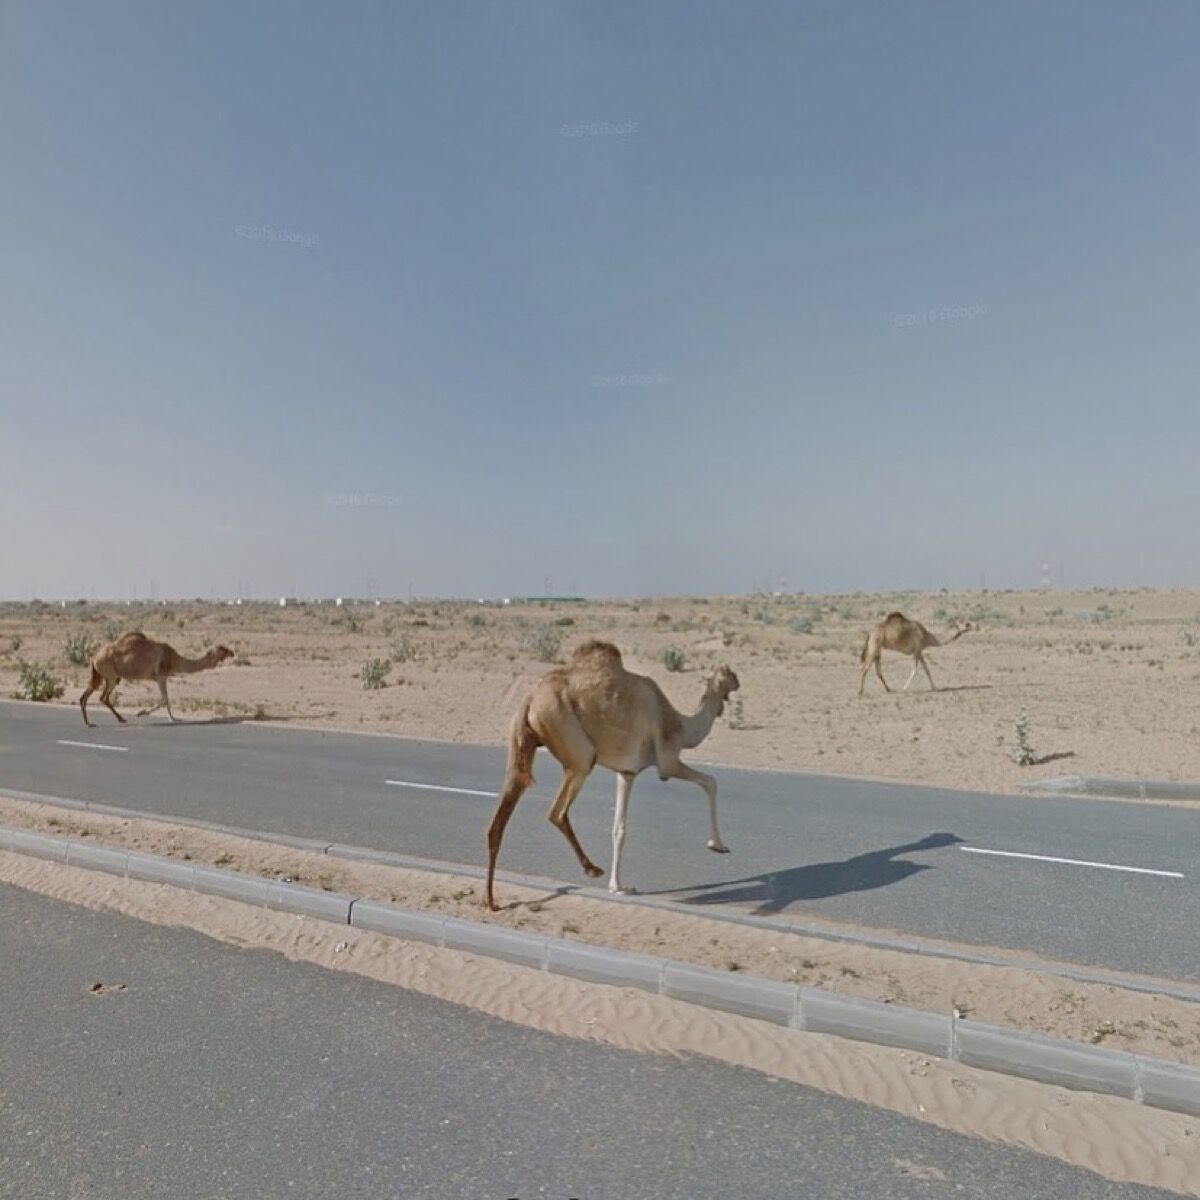 Sharjah, United Arab Emirates. Photograph by Jacqui Kenny via Google Street View.